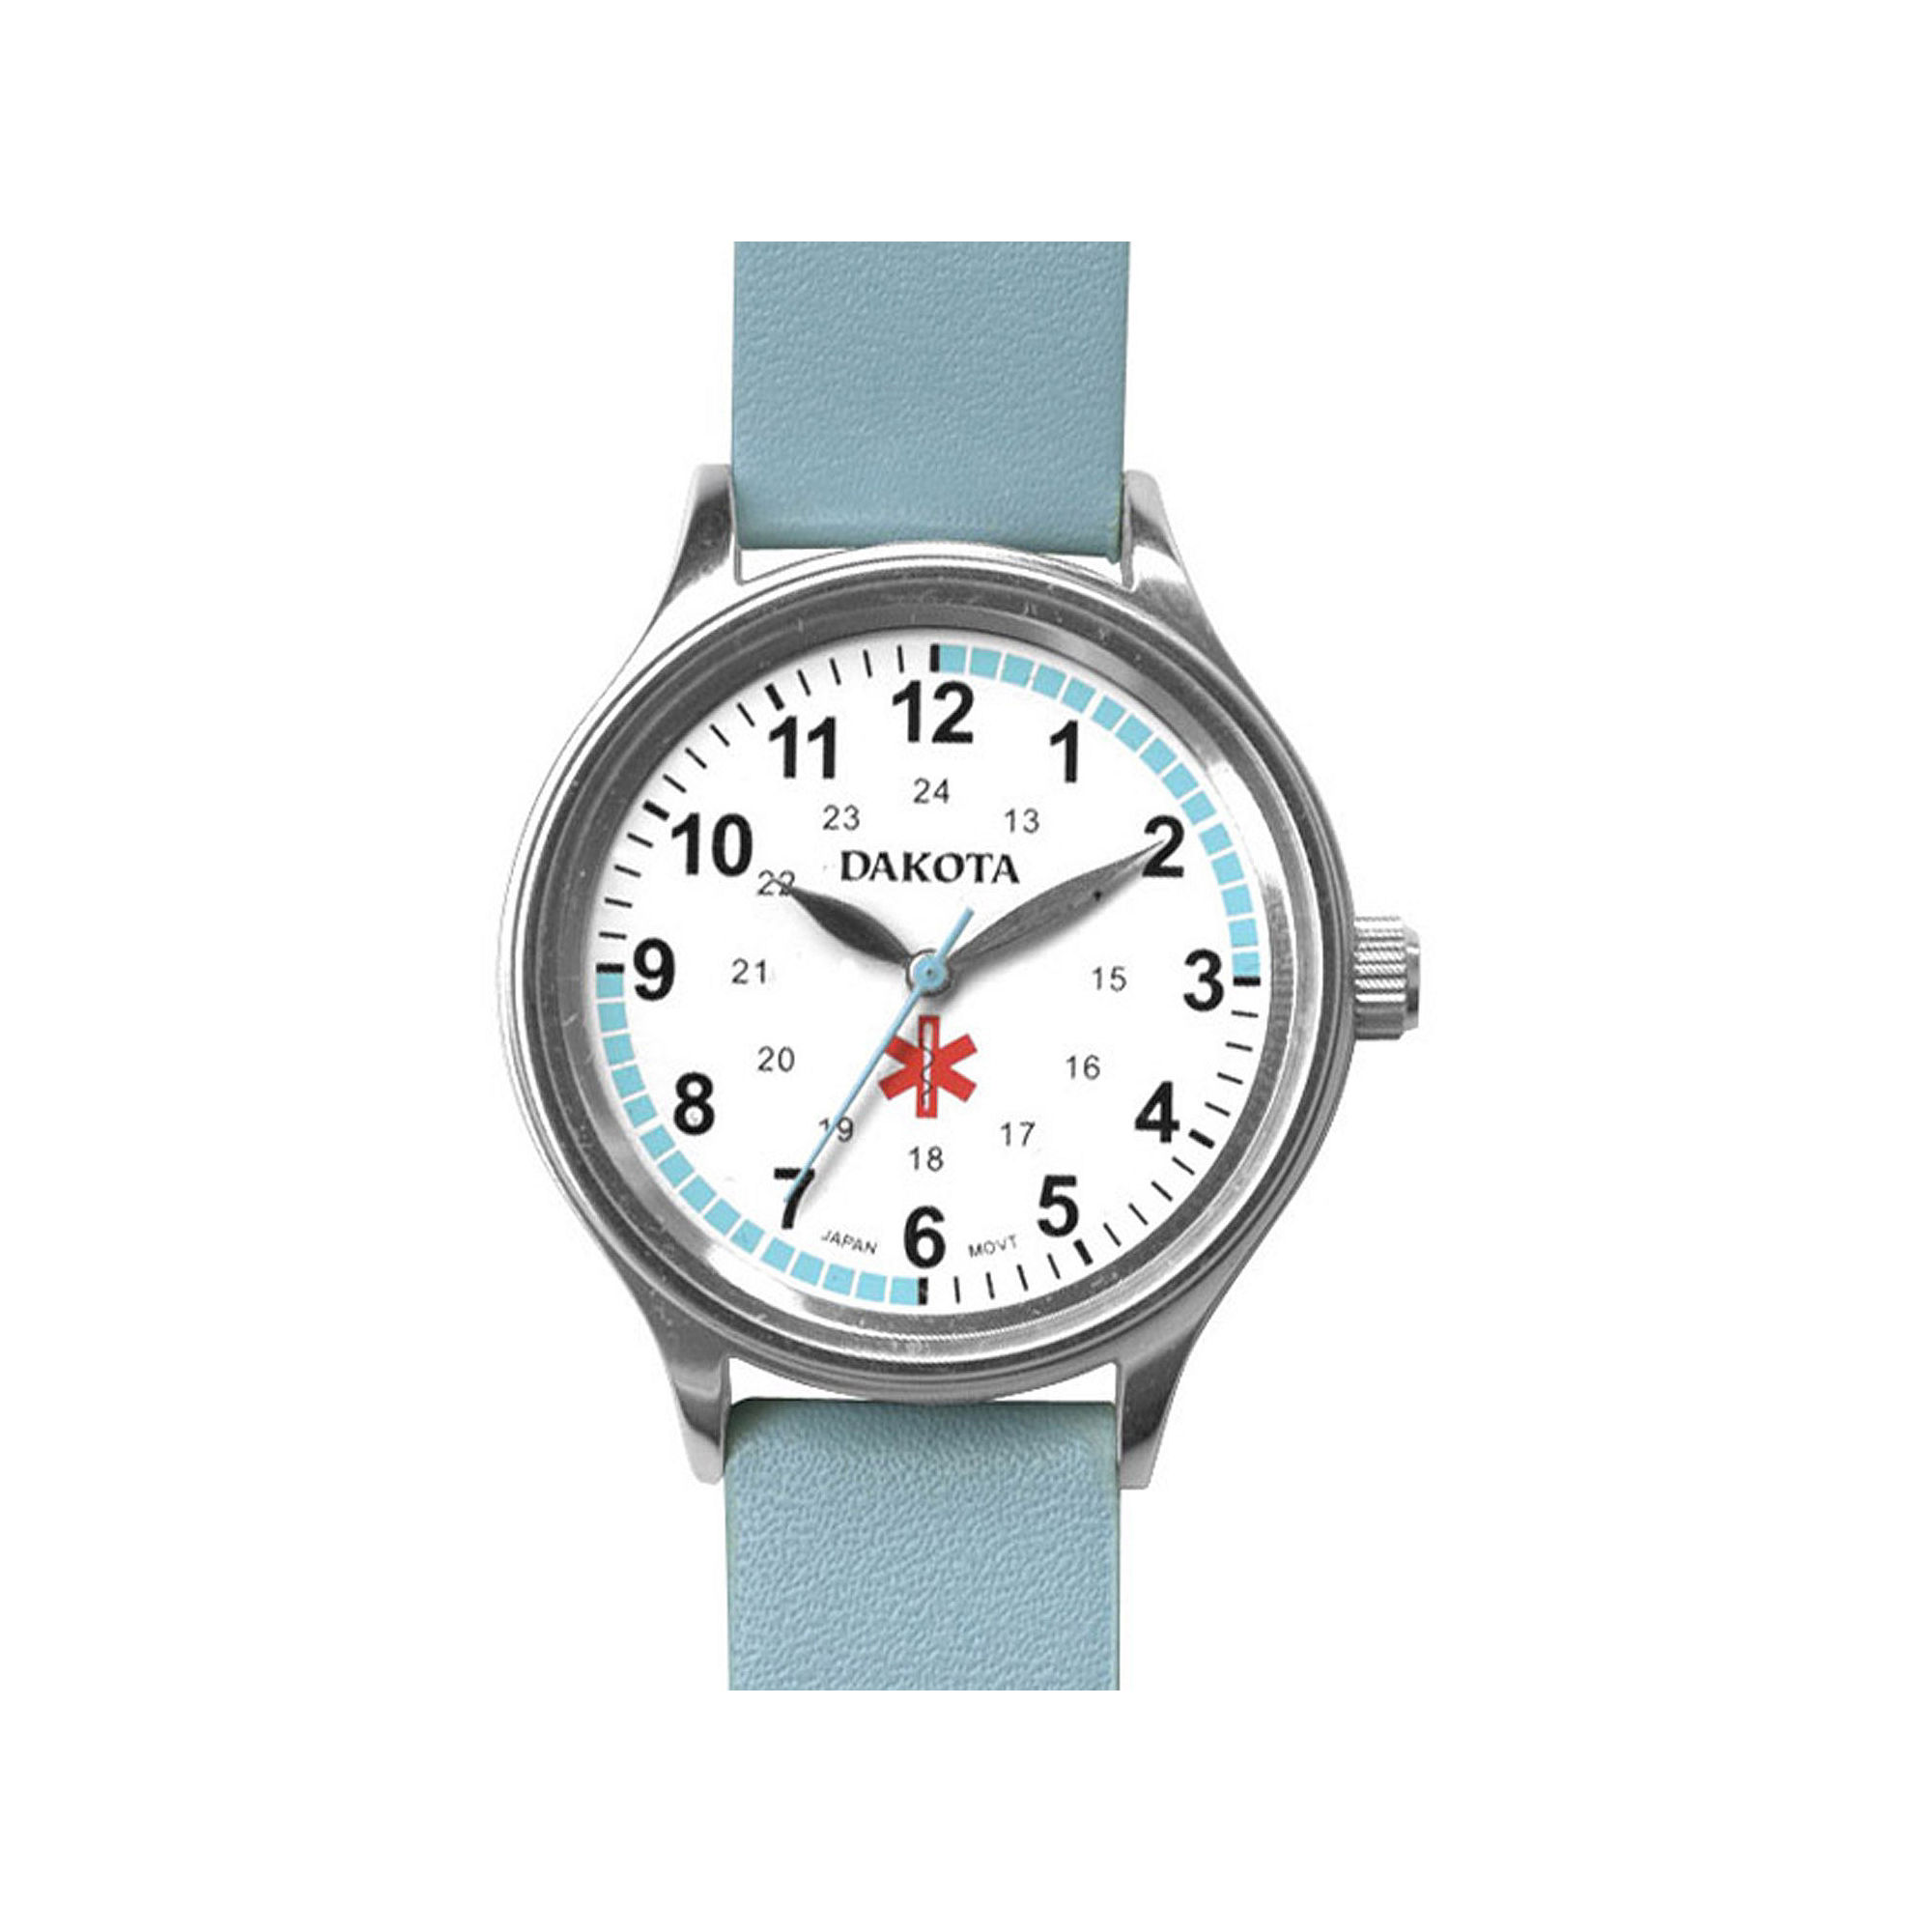 Dakota Women's Fun Color Nurse Watch, Light Blue